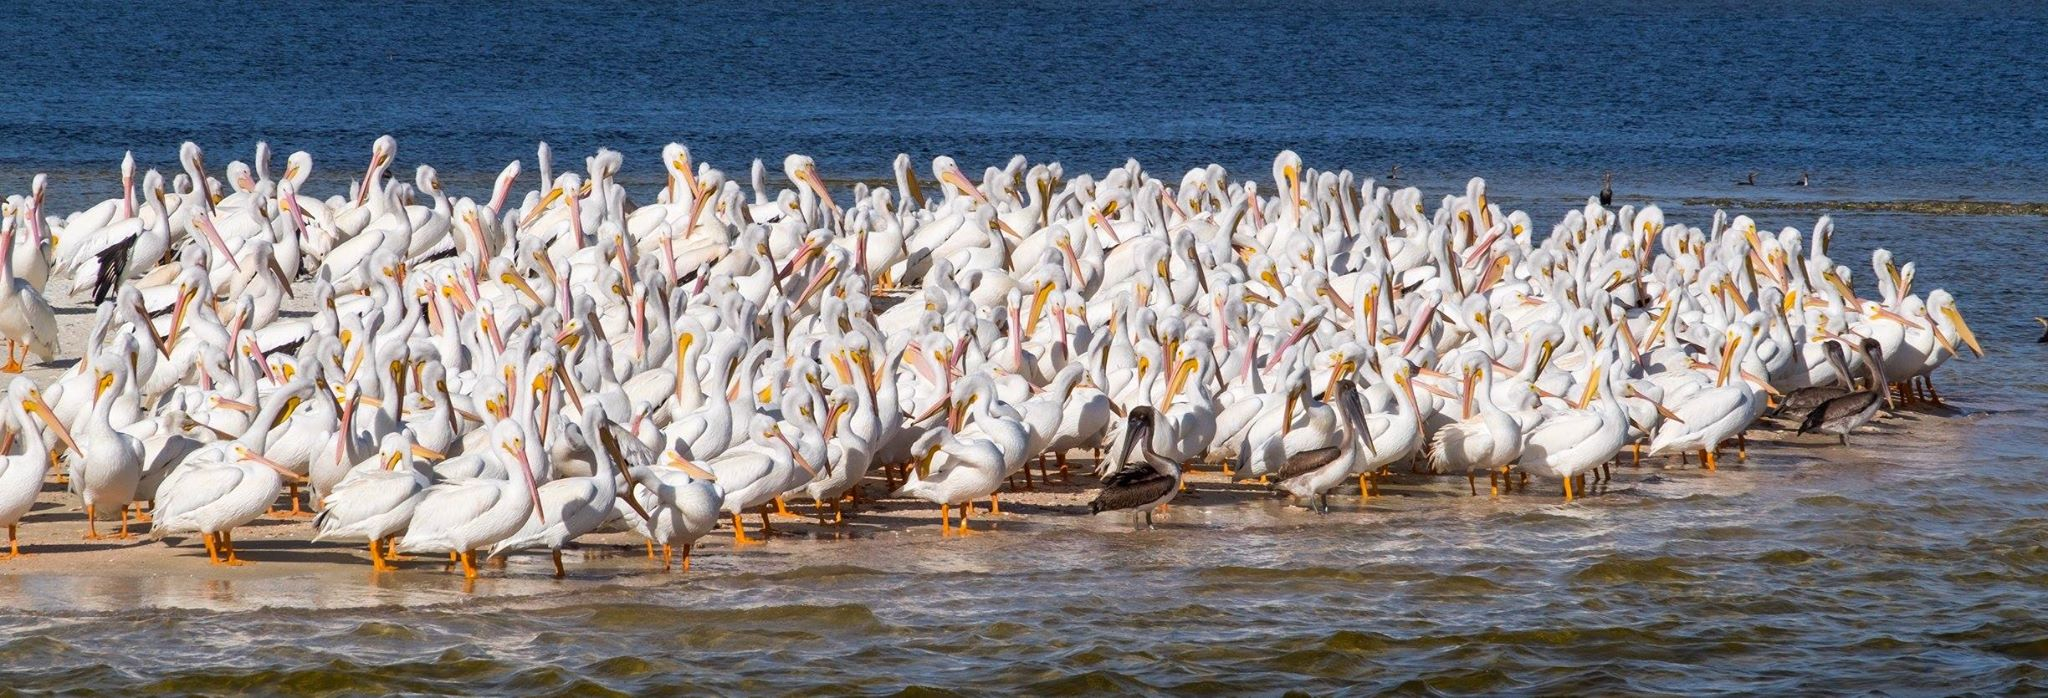 White Pelicans in Everglades National Park